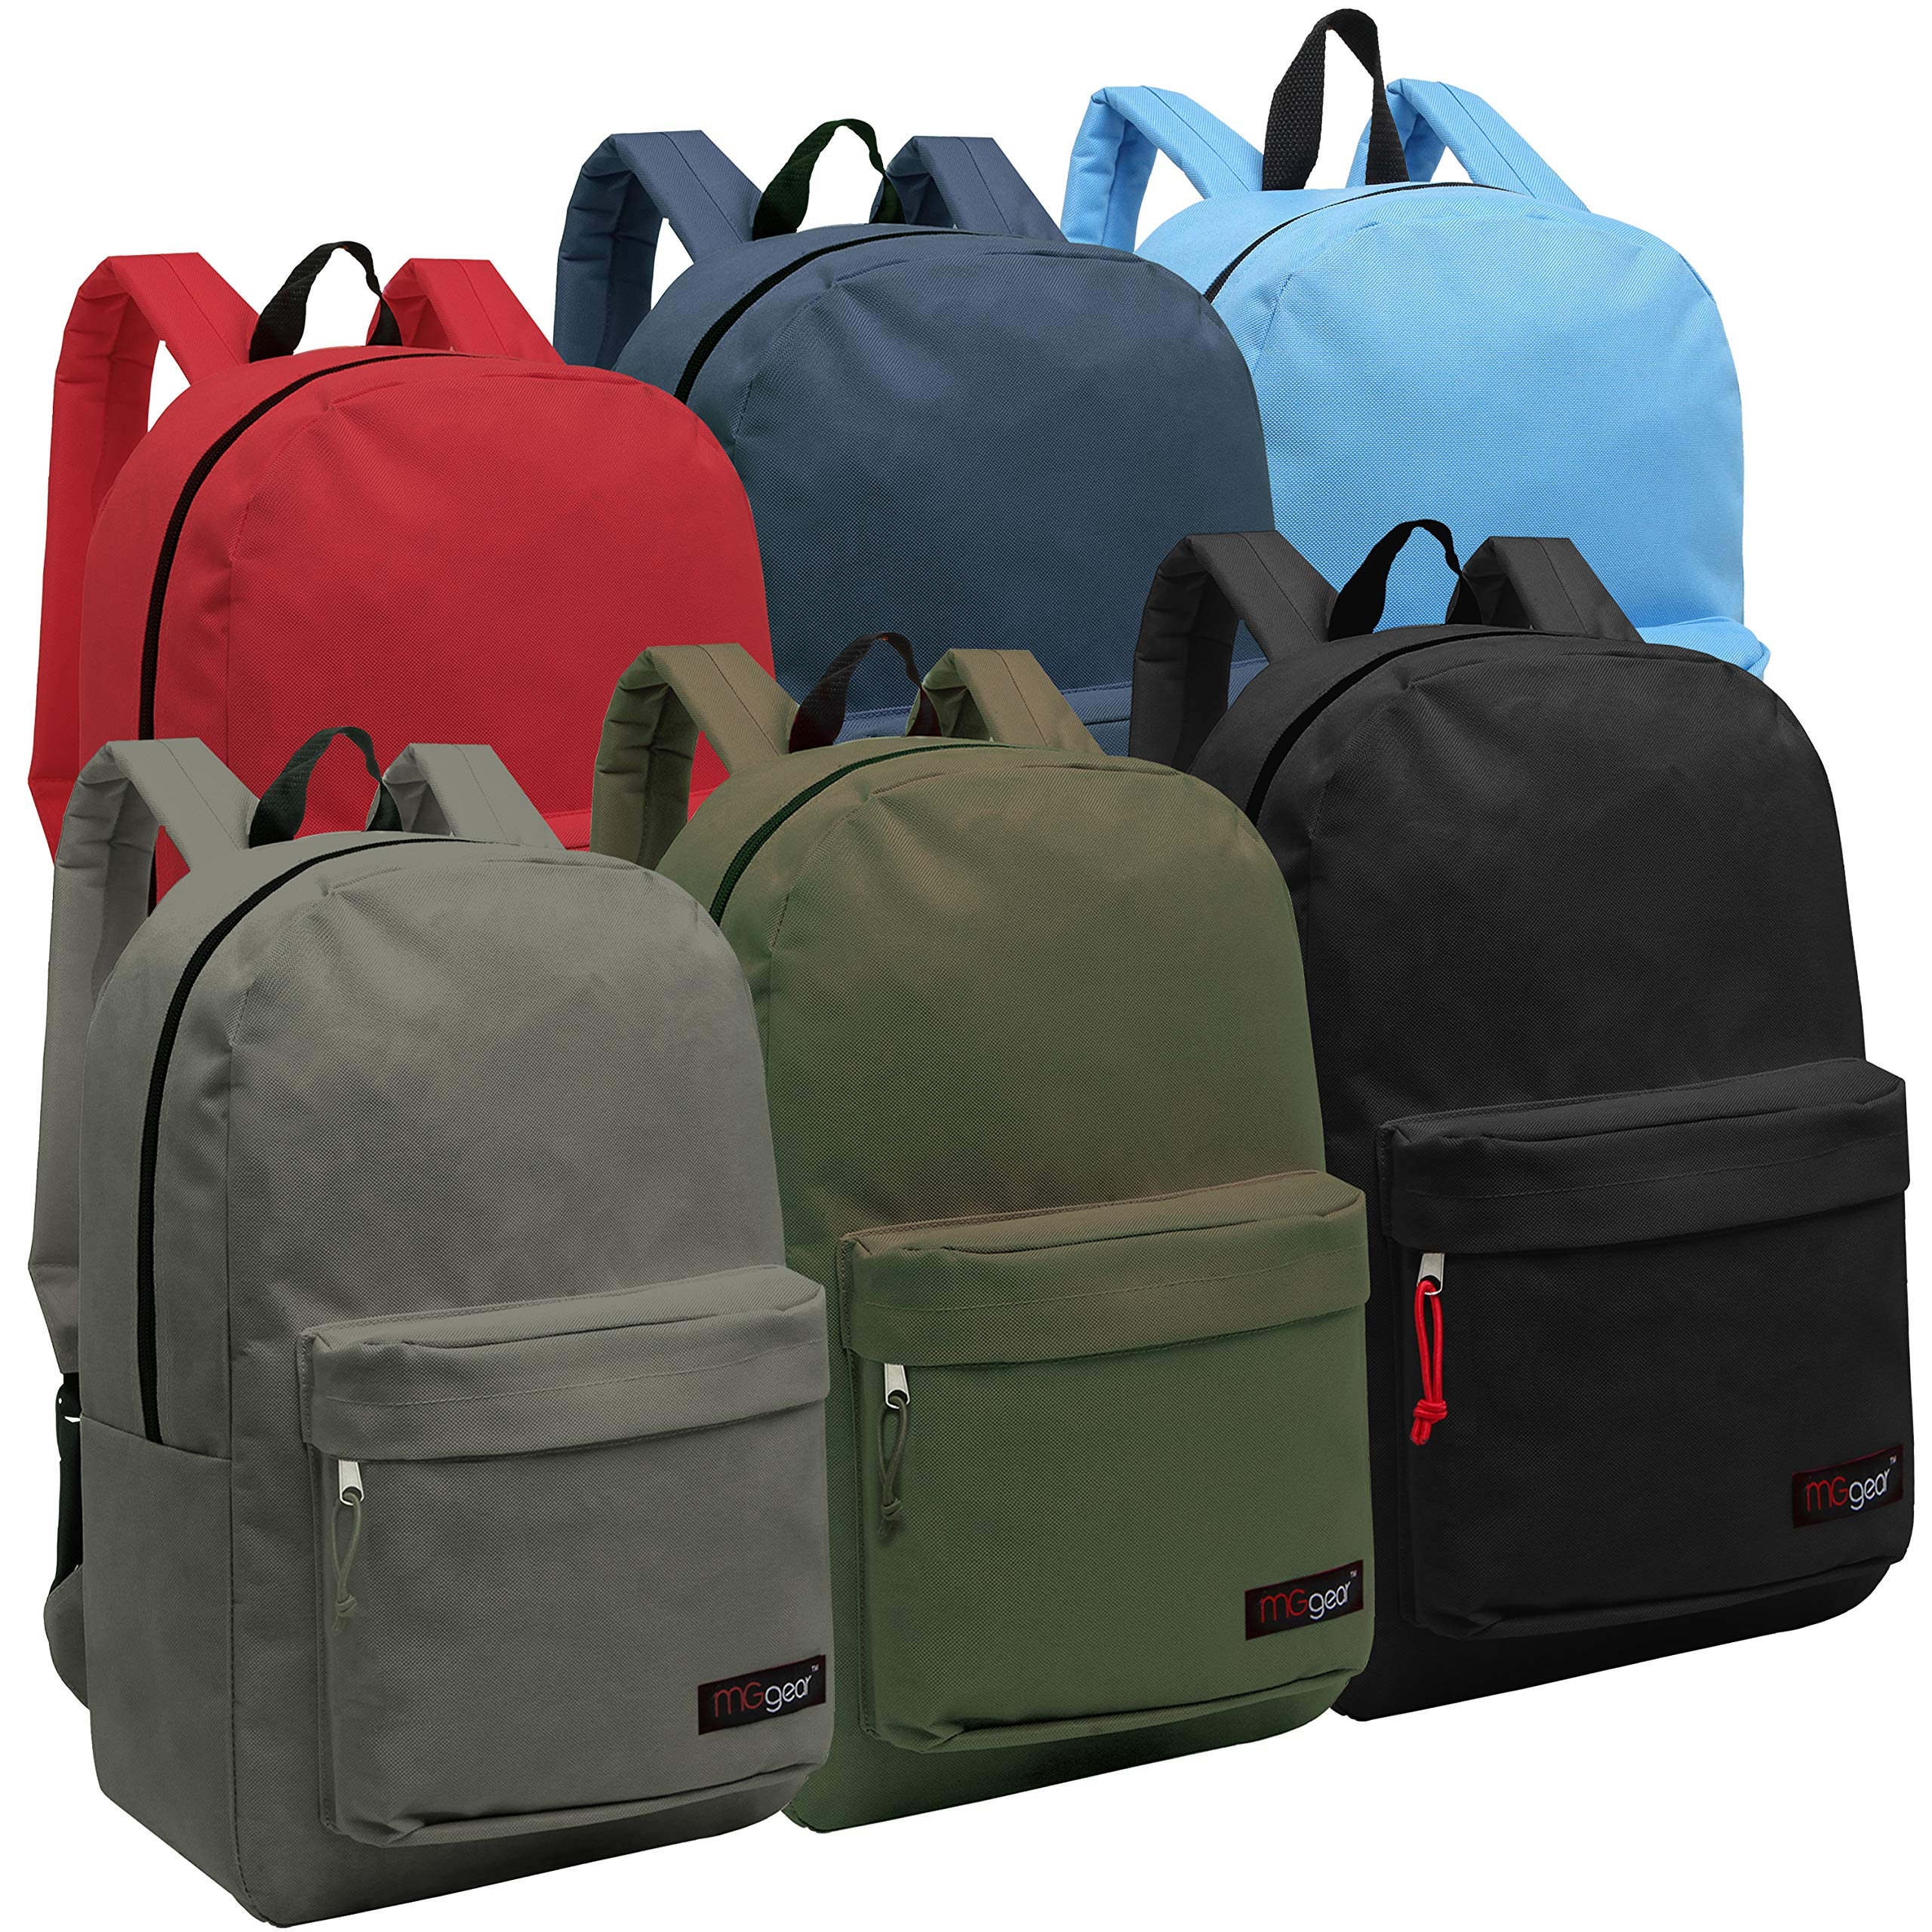 Wholesale 16.5 Inch Backpacks - Case of 24 Multicolored MGgear Bulk School Bags by MGgear